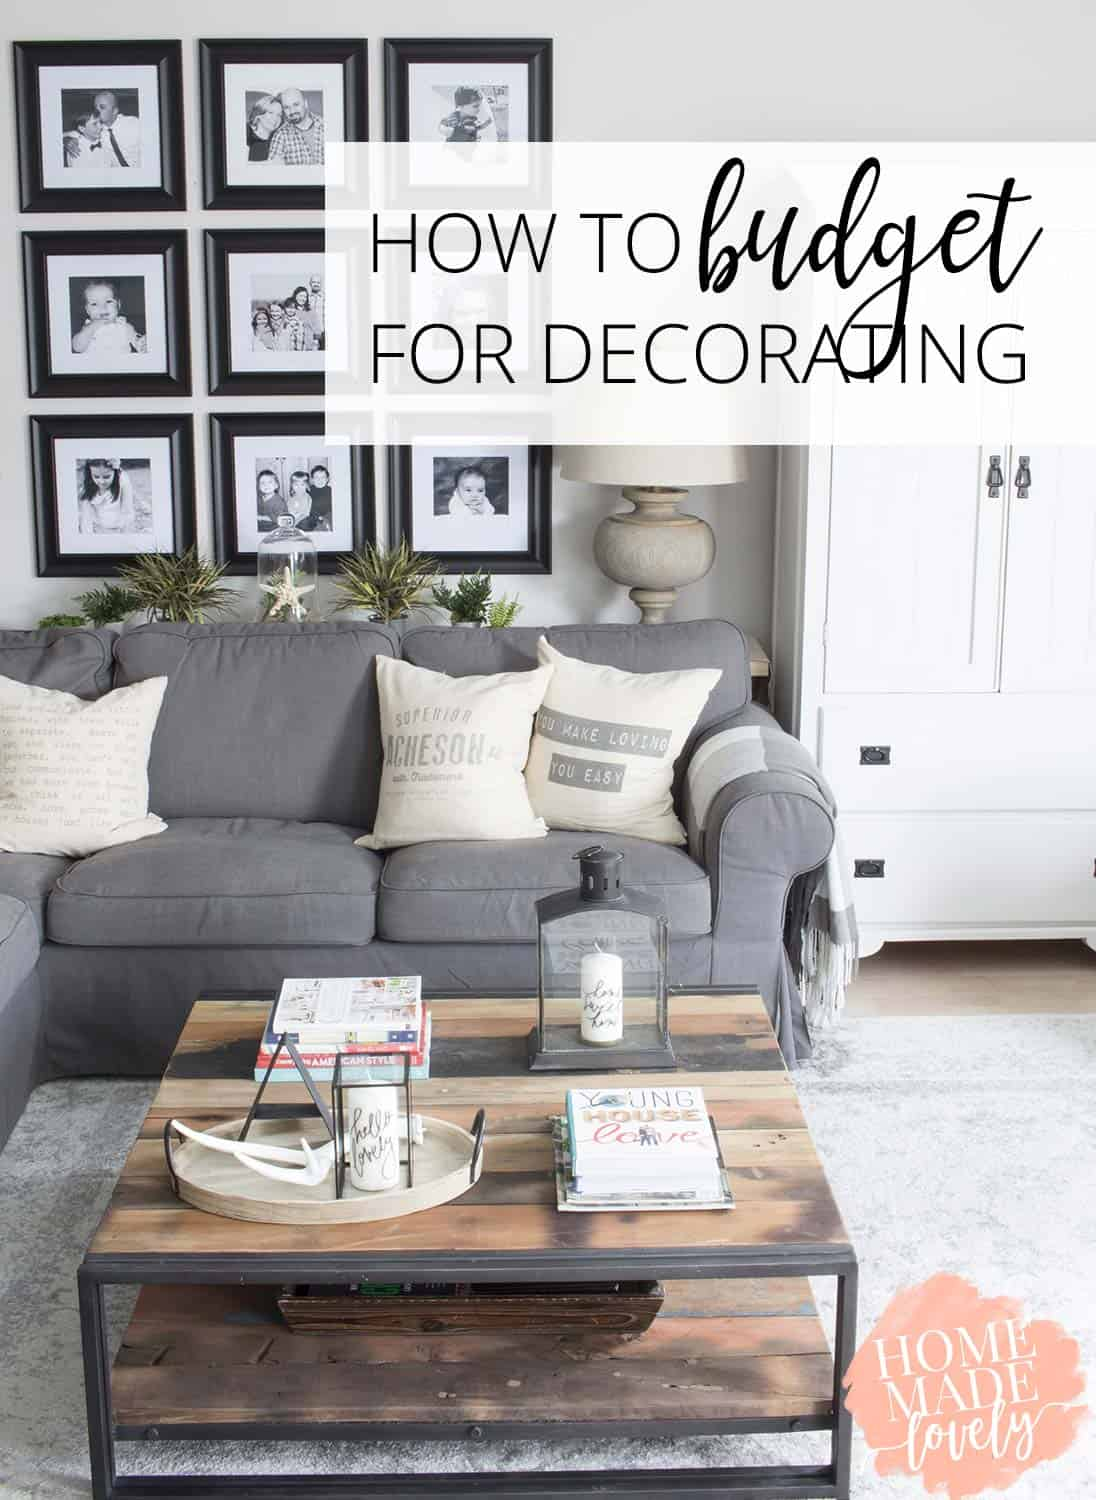 Ready to decorate your home? Of course, you need to know how to budget for decorating! This post shares how & also has budget decorating ideas too!